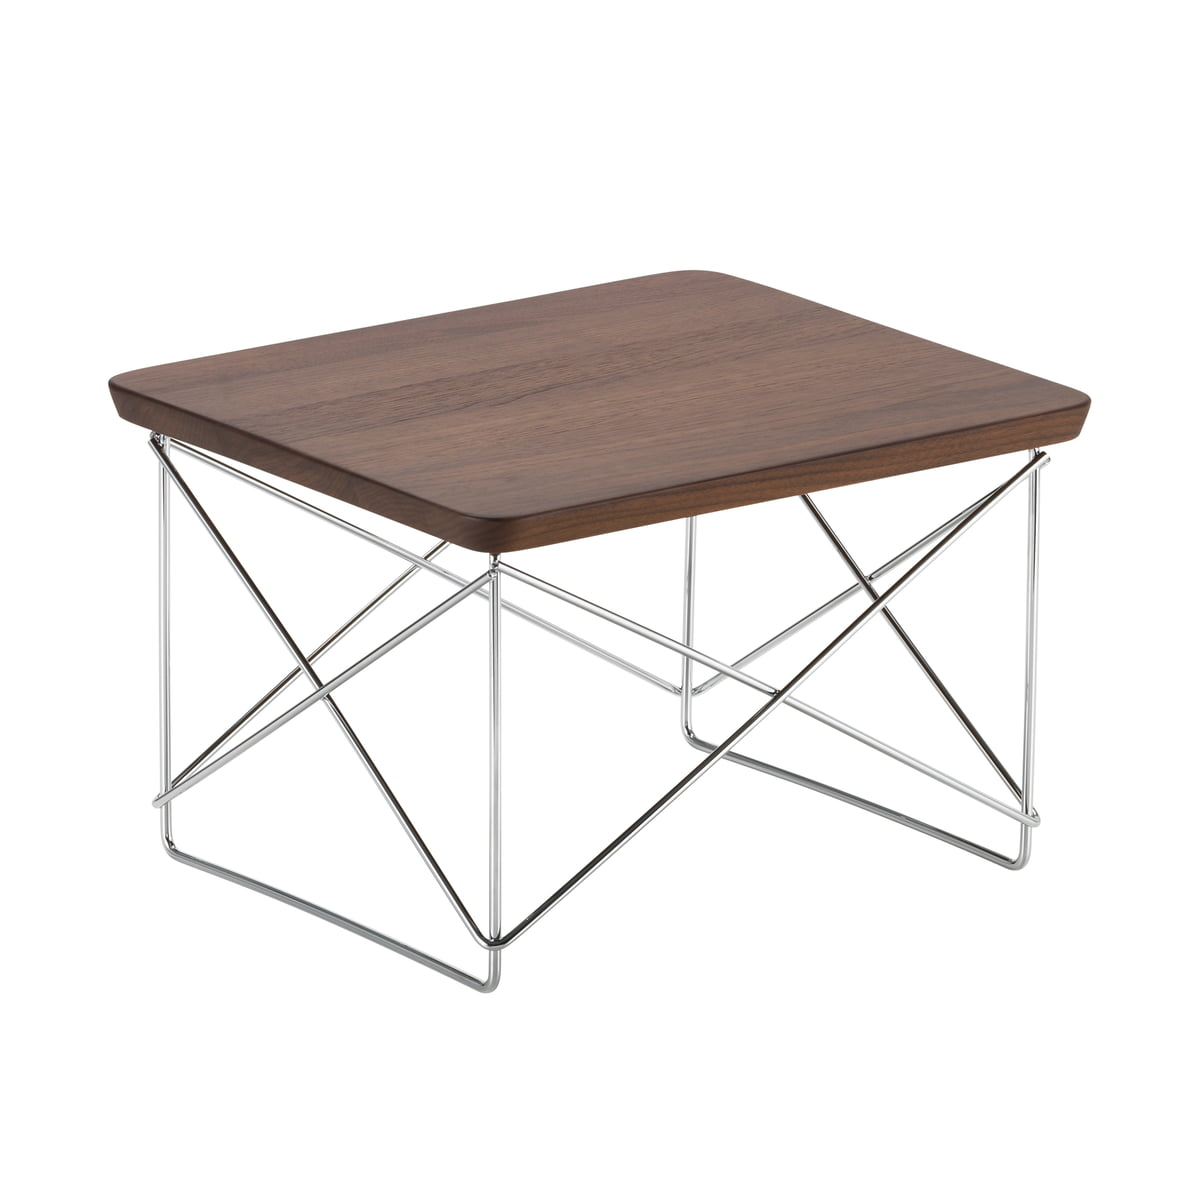 Vitra - Table Eames Occasional LTR noyer / chrome